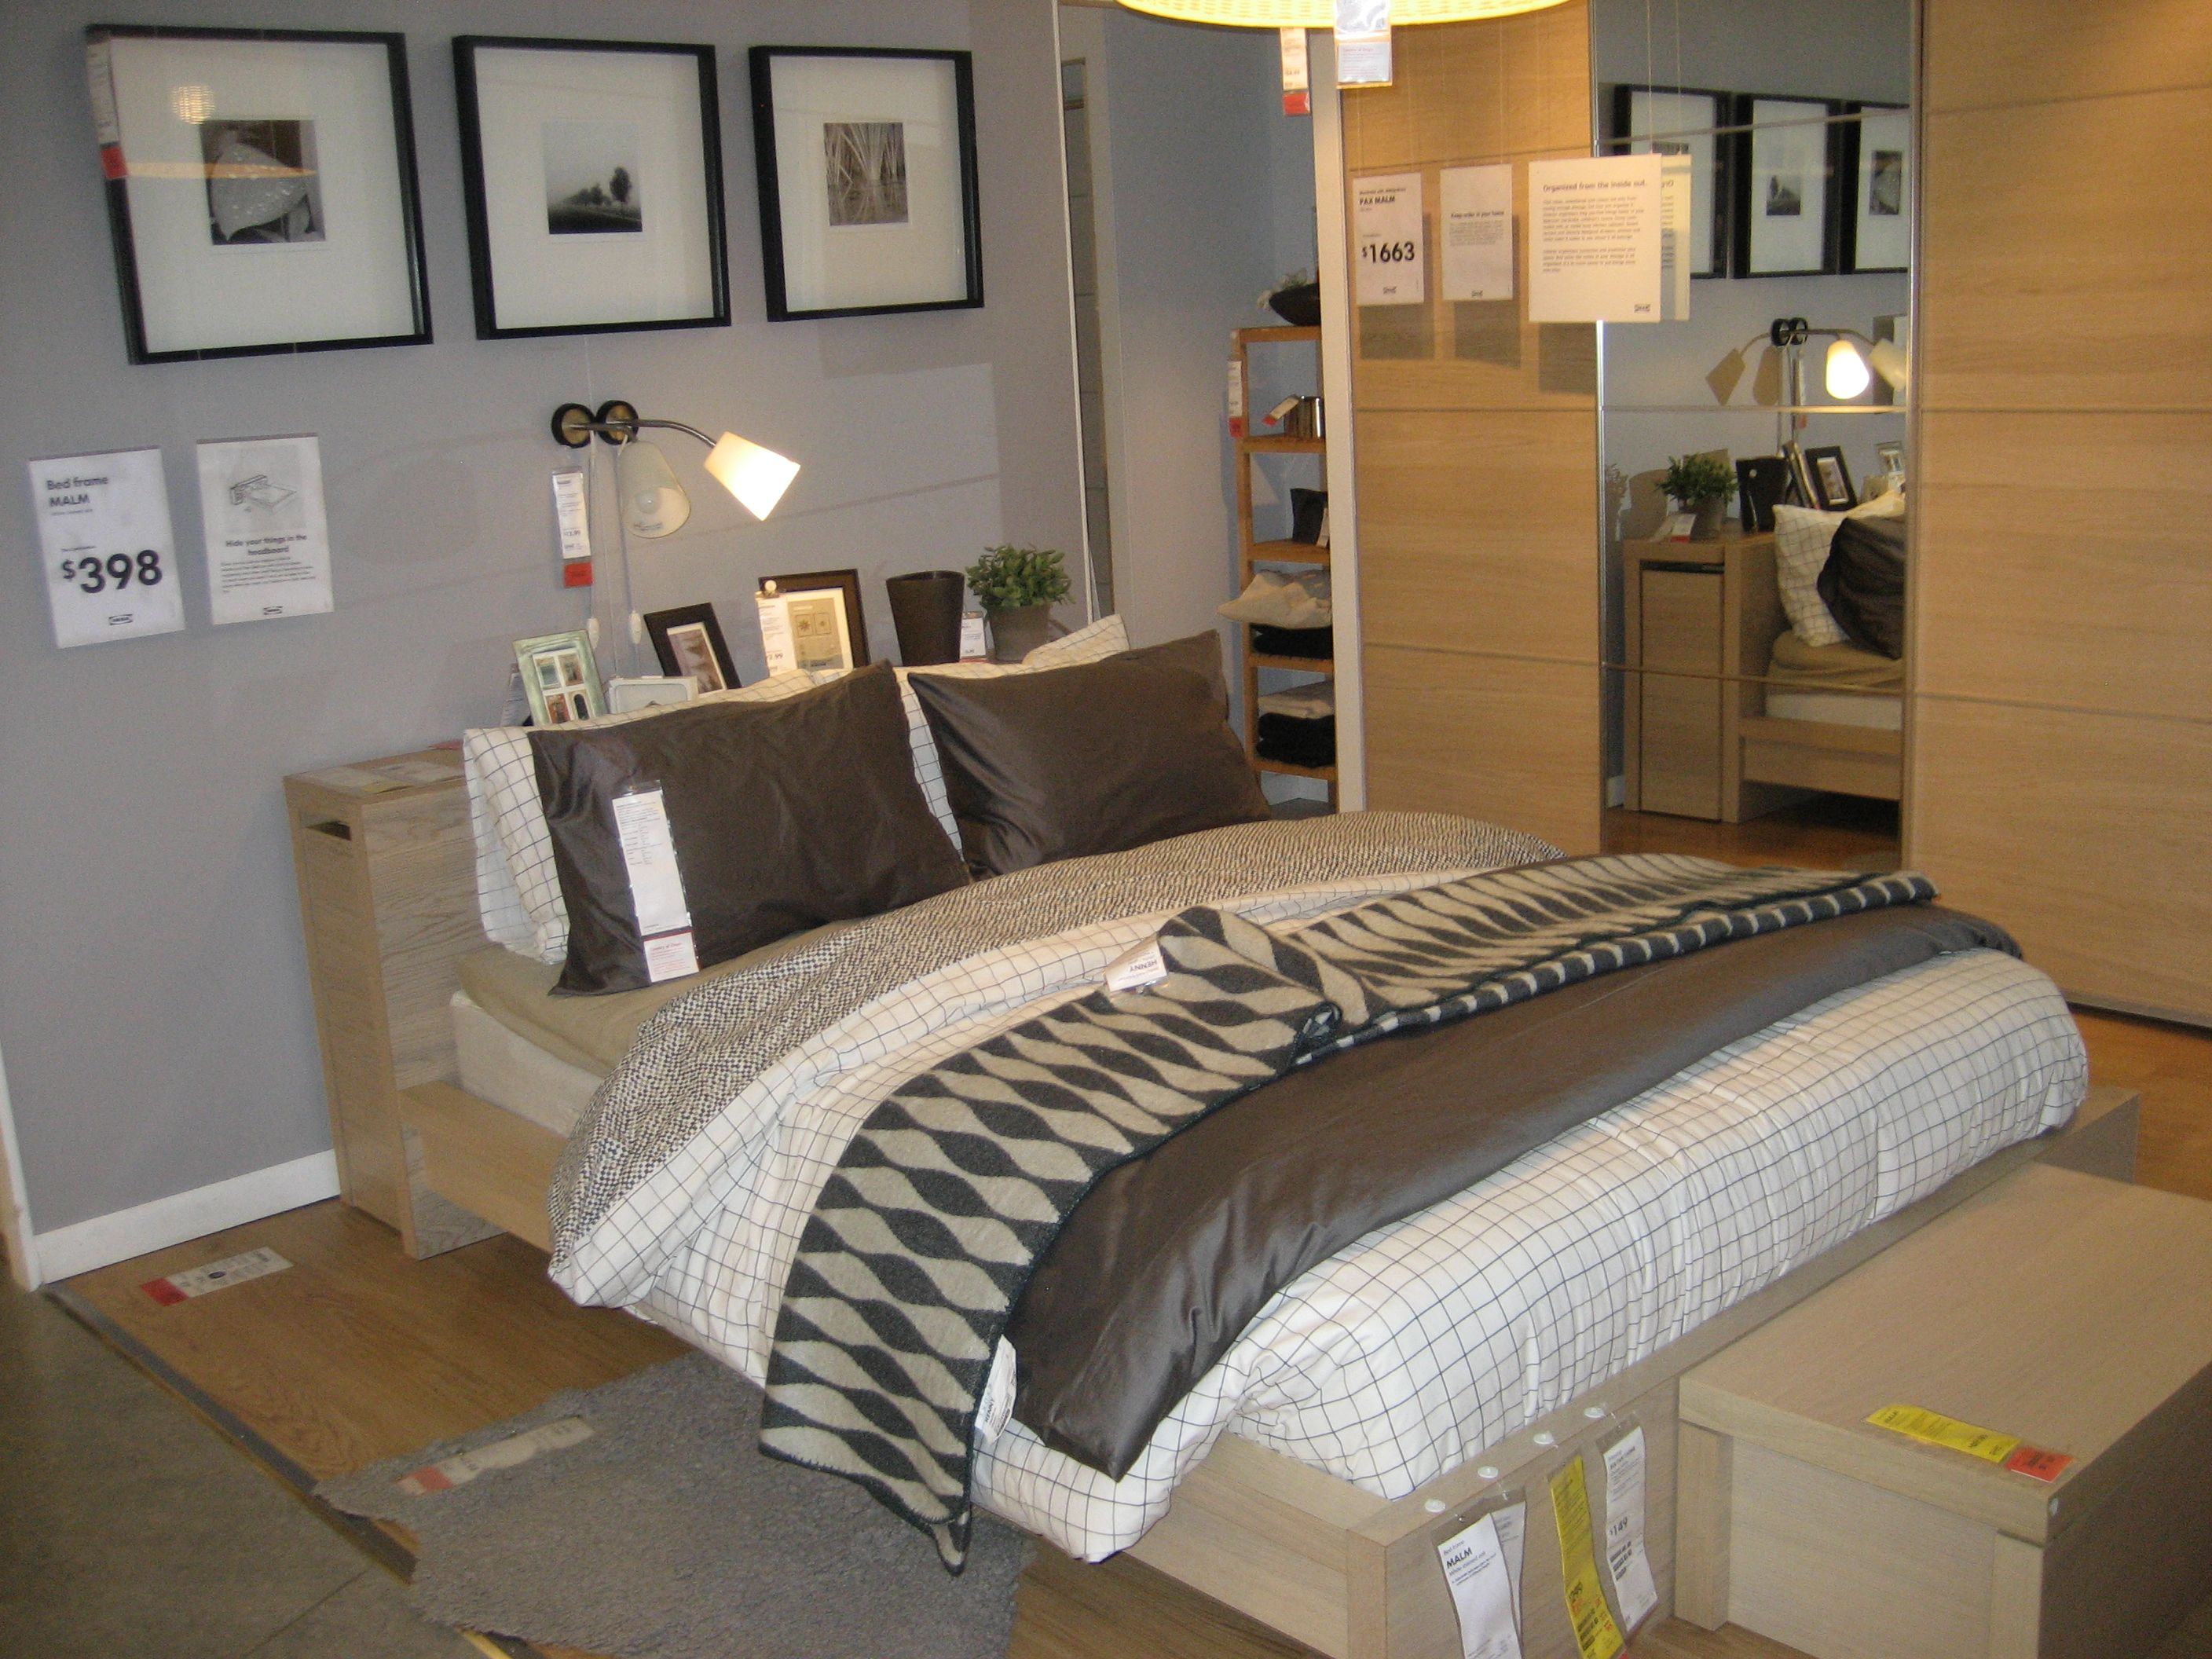 ikea malm bedroom set bedroom ikea bedroom sets ikea 11839 | 5e09c230f3536e9612fd6bb7dc65c4f6